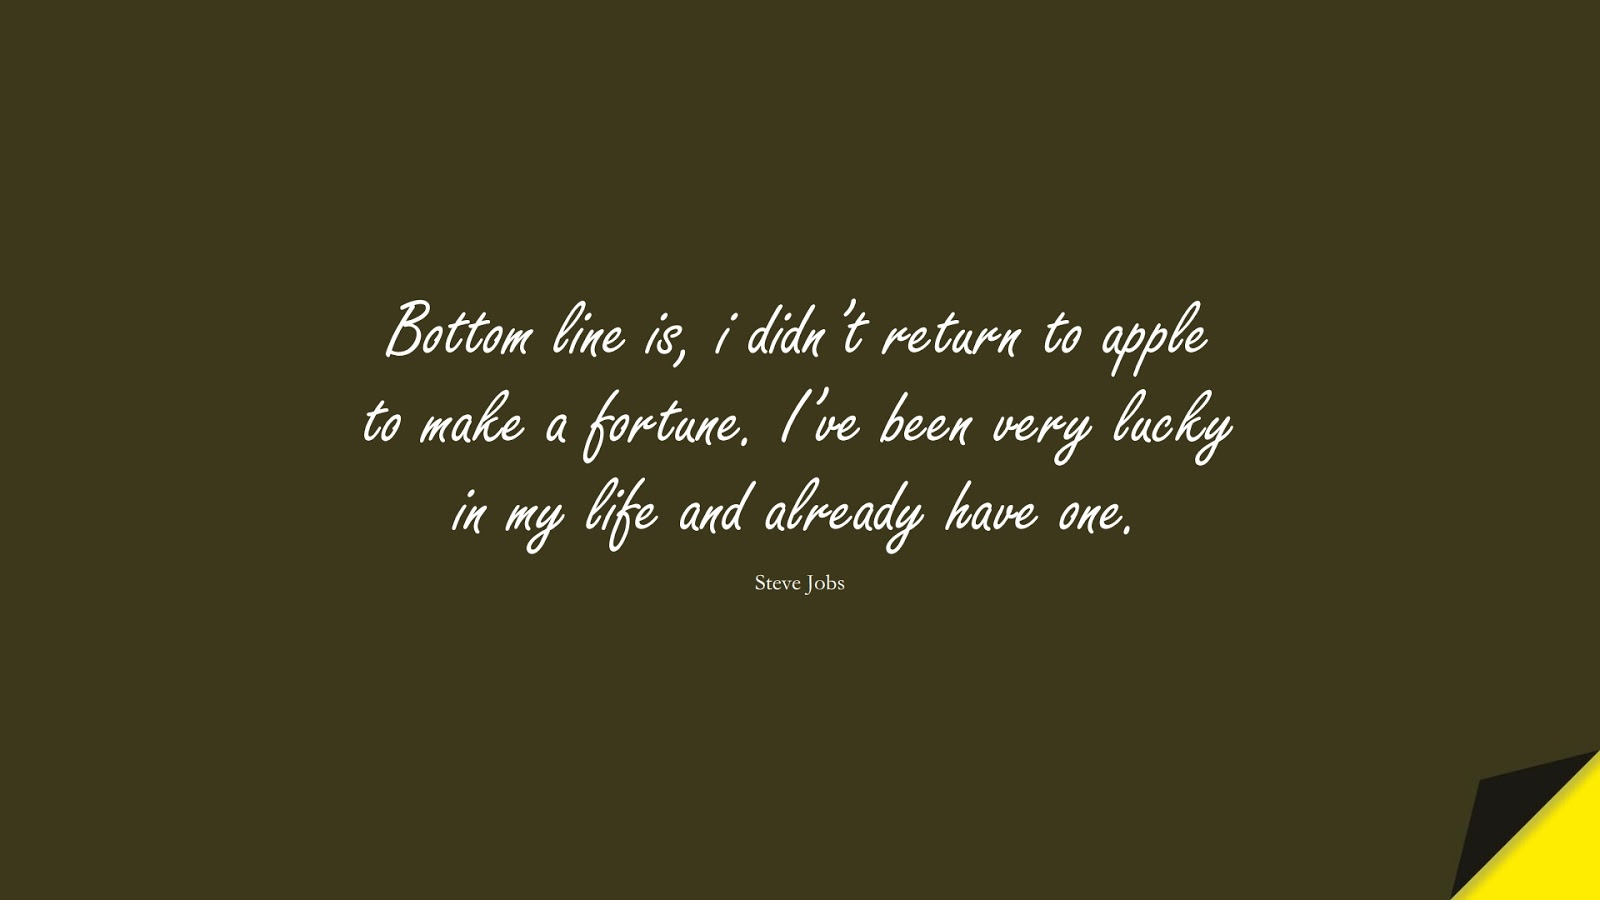 Bottom line is, i didn't return to apple to make a fortune. I've been very lucky in my life and already have one. (Steve Jobs);  #SteveJobsQuotes